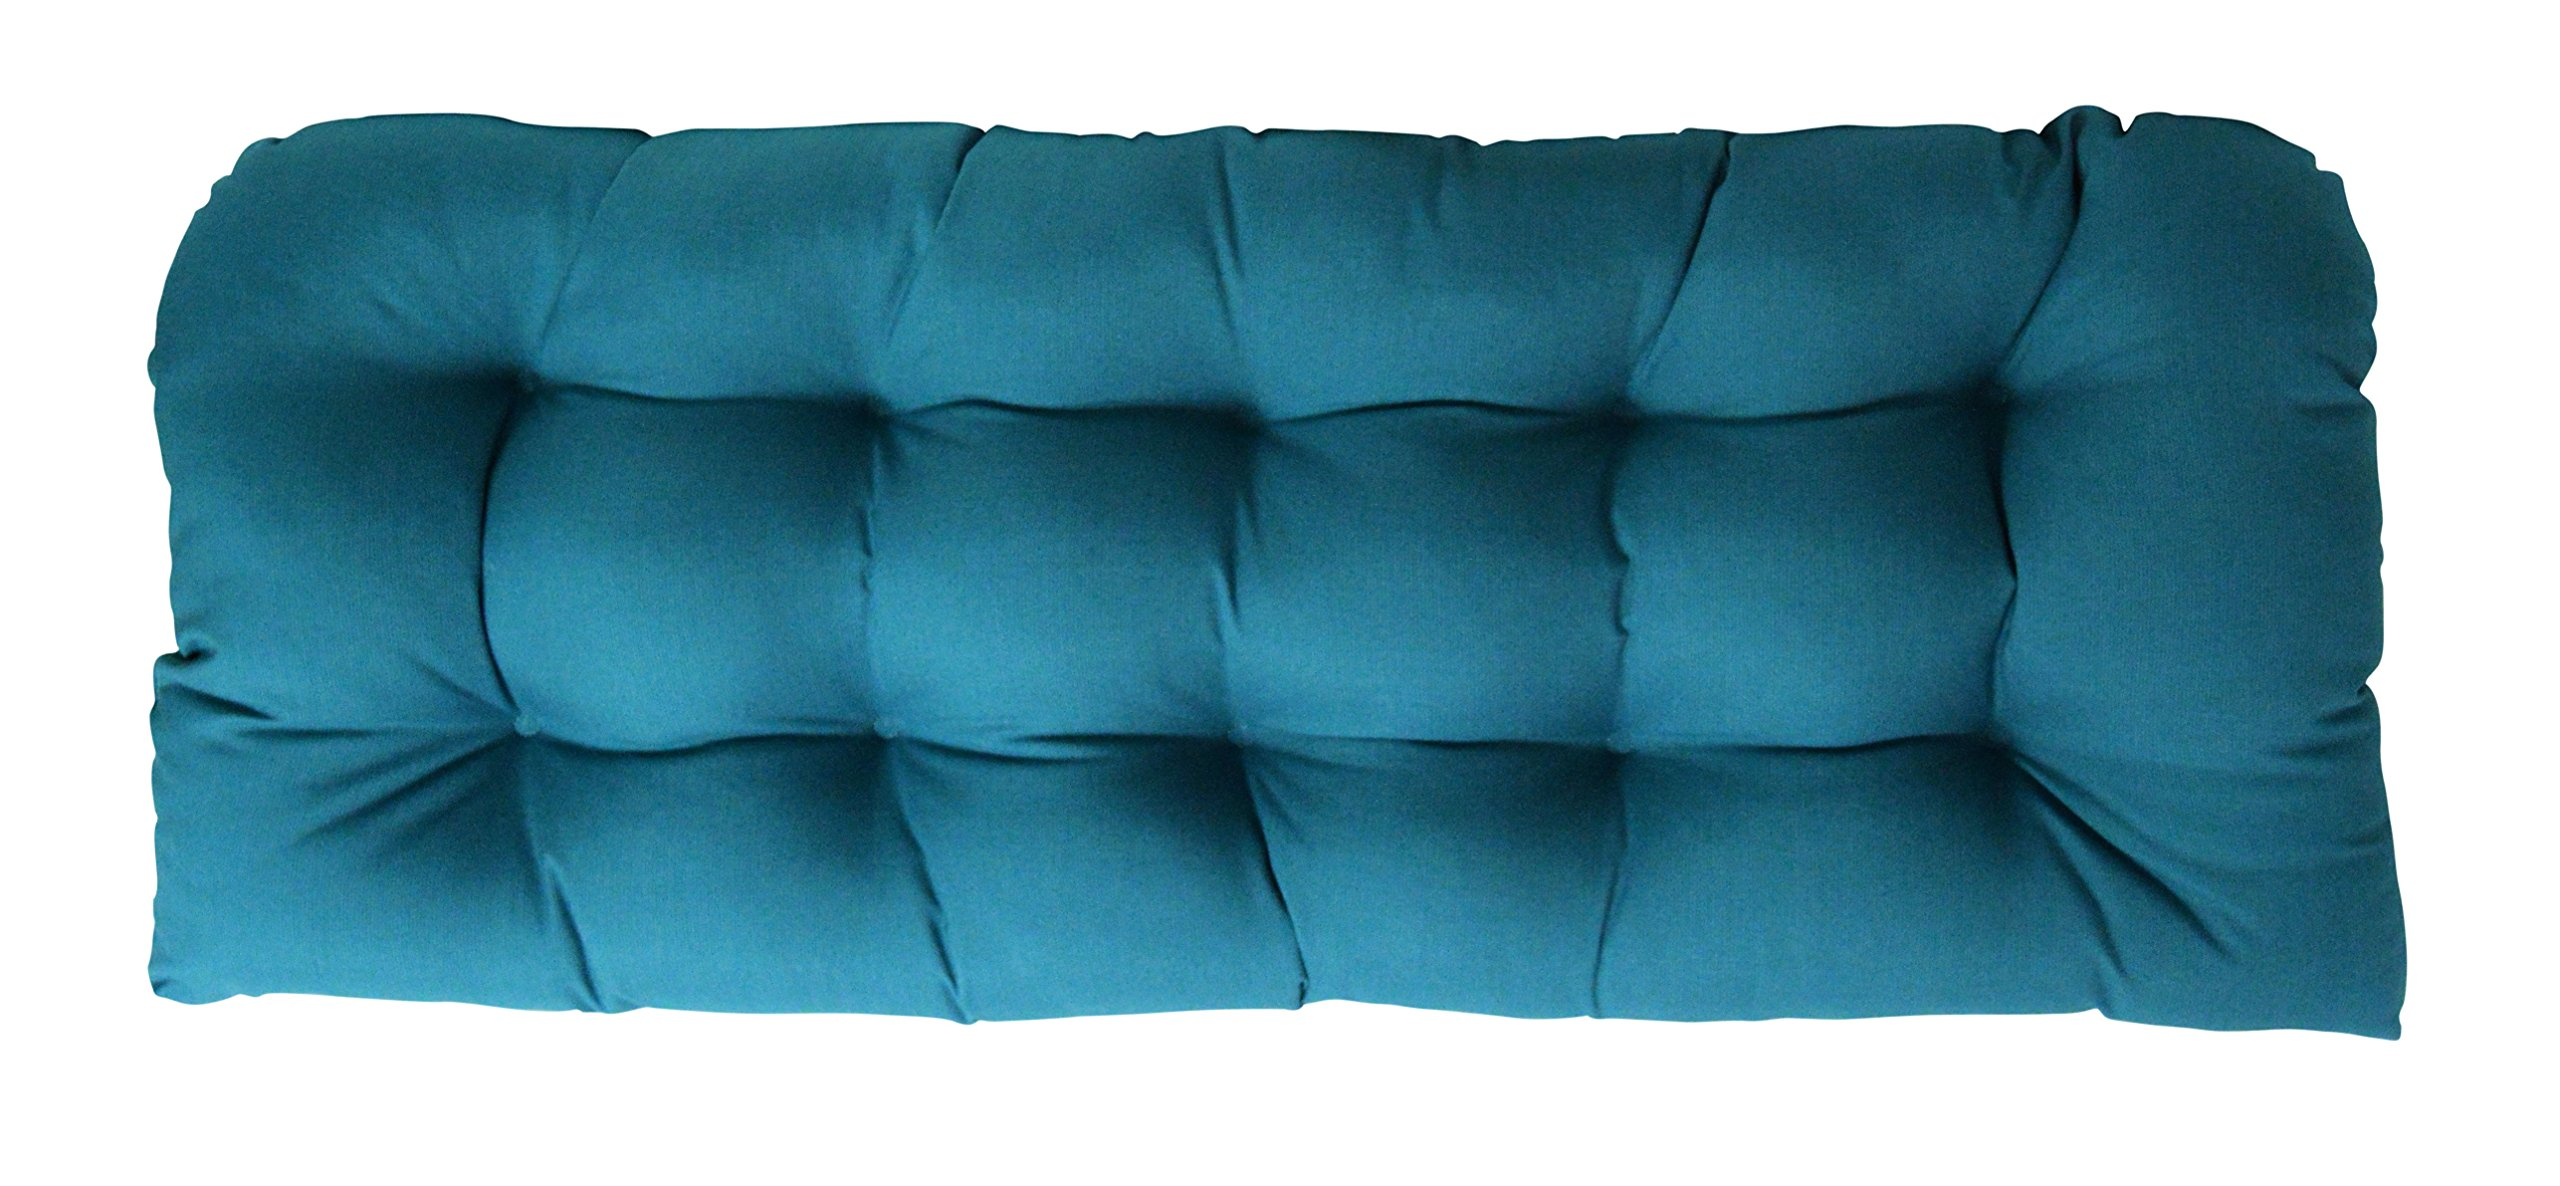 Resort Spa Home Decor Indoor/Outdoor Tufted Cushion for Wicker Loveseat Settee - Sunbrella Spectrum Peacock - Teal/Turquoise/Blue/Green (1132)